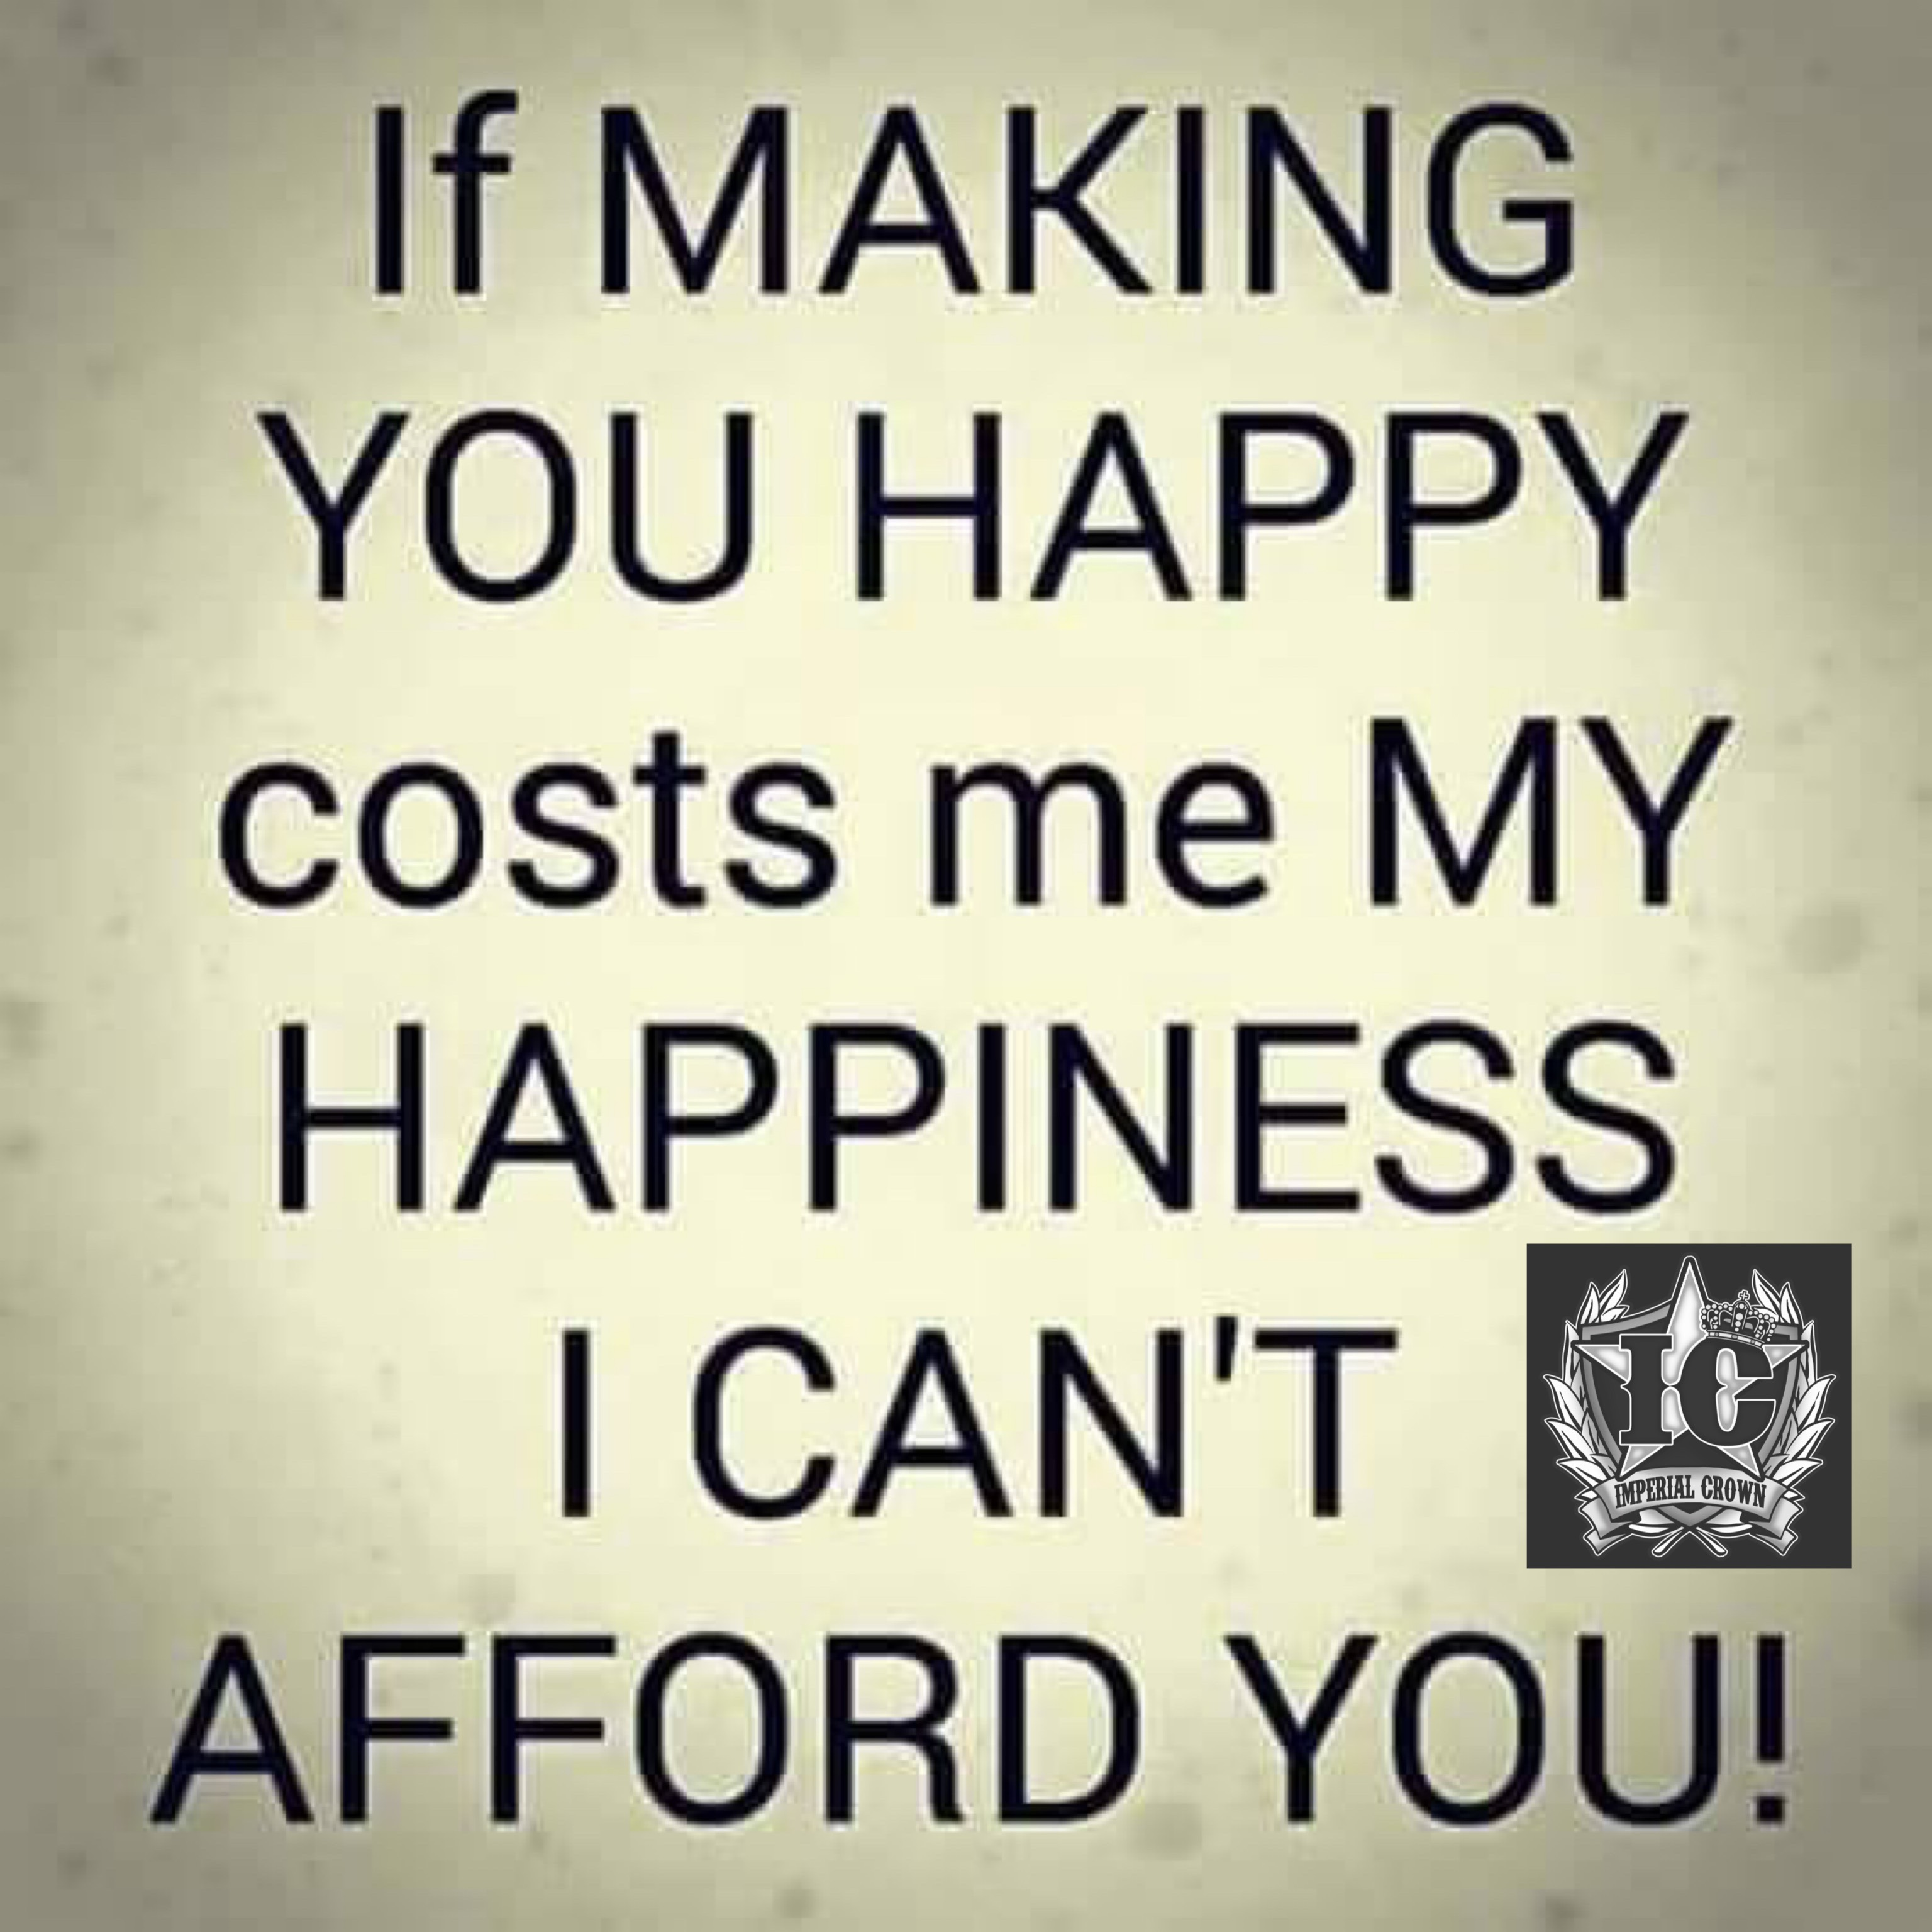 If making you happy costs me my happiness I can't afford you….